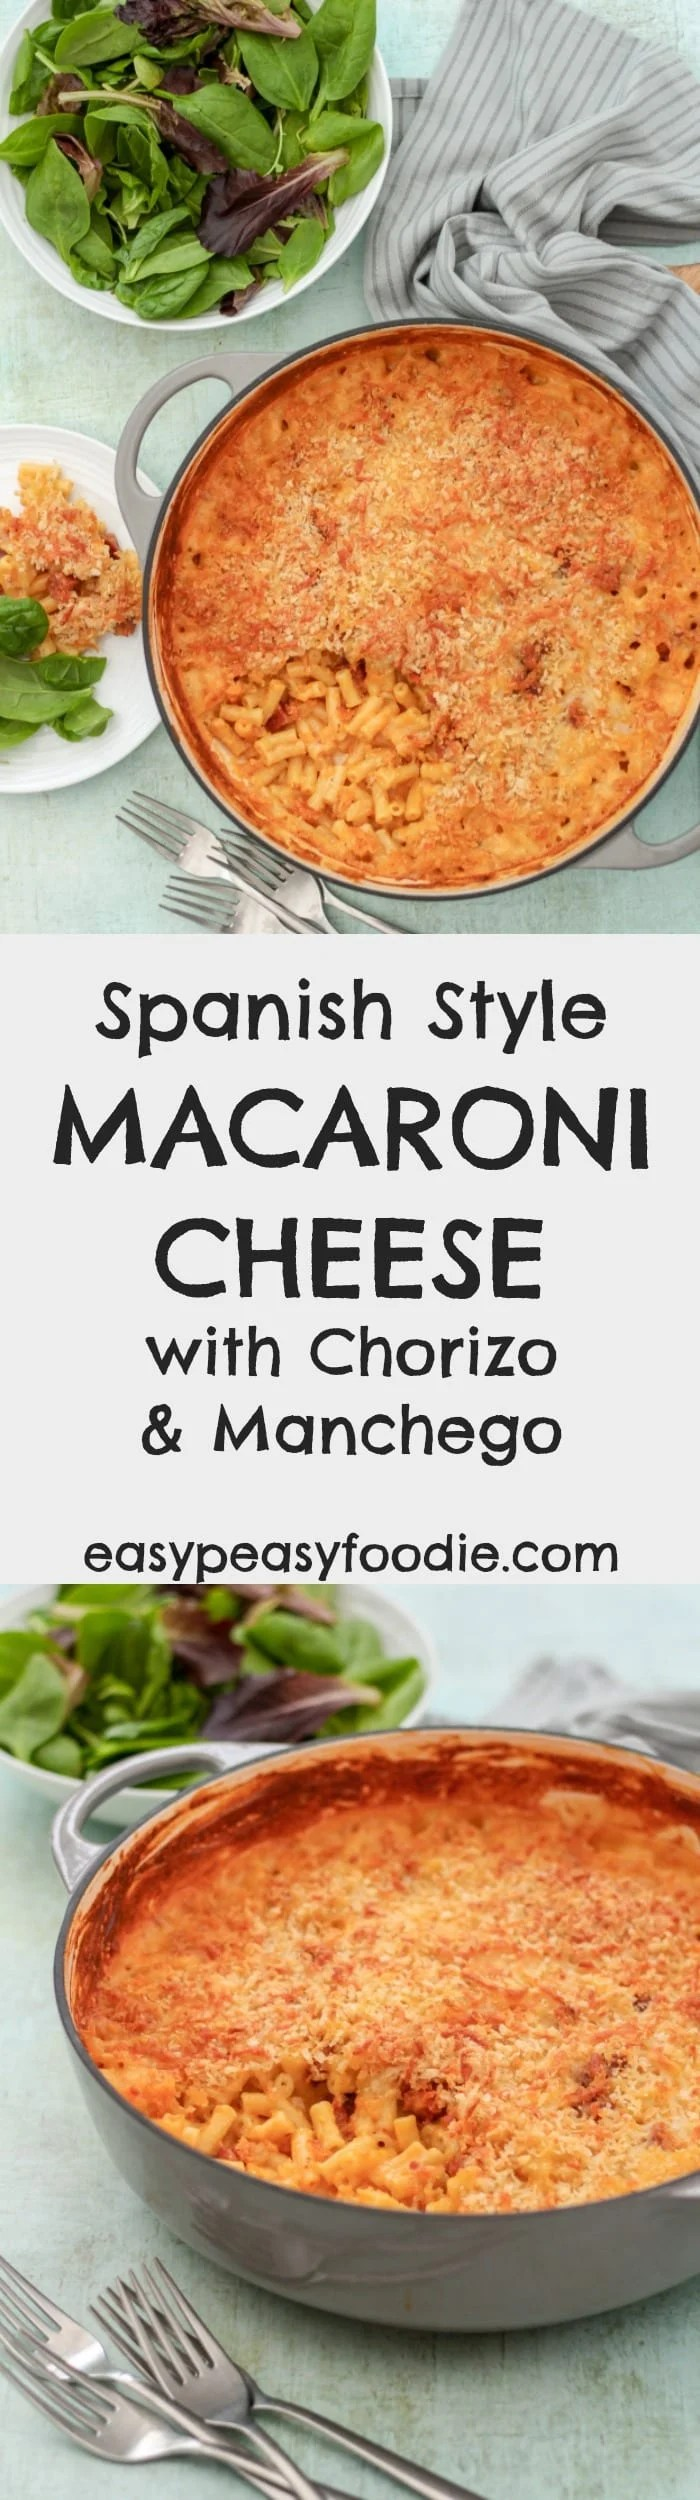 Hearty comfort food at its best, this Spanish style Macaroni Cheese with Chorizo and Manchego takes the humble mac and cheese to the next level!  #spanish #spanishfood #macaronicheese #macandcheese #chorizo #manchego #pasta #easydinners #midweekmeals #easypeasyfoodie